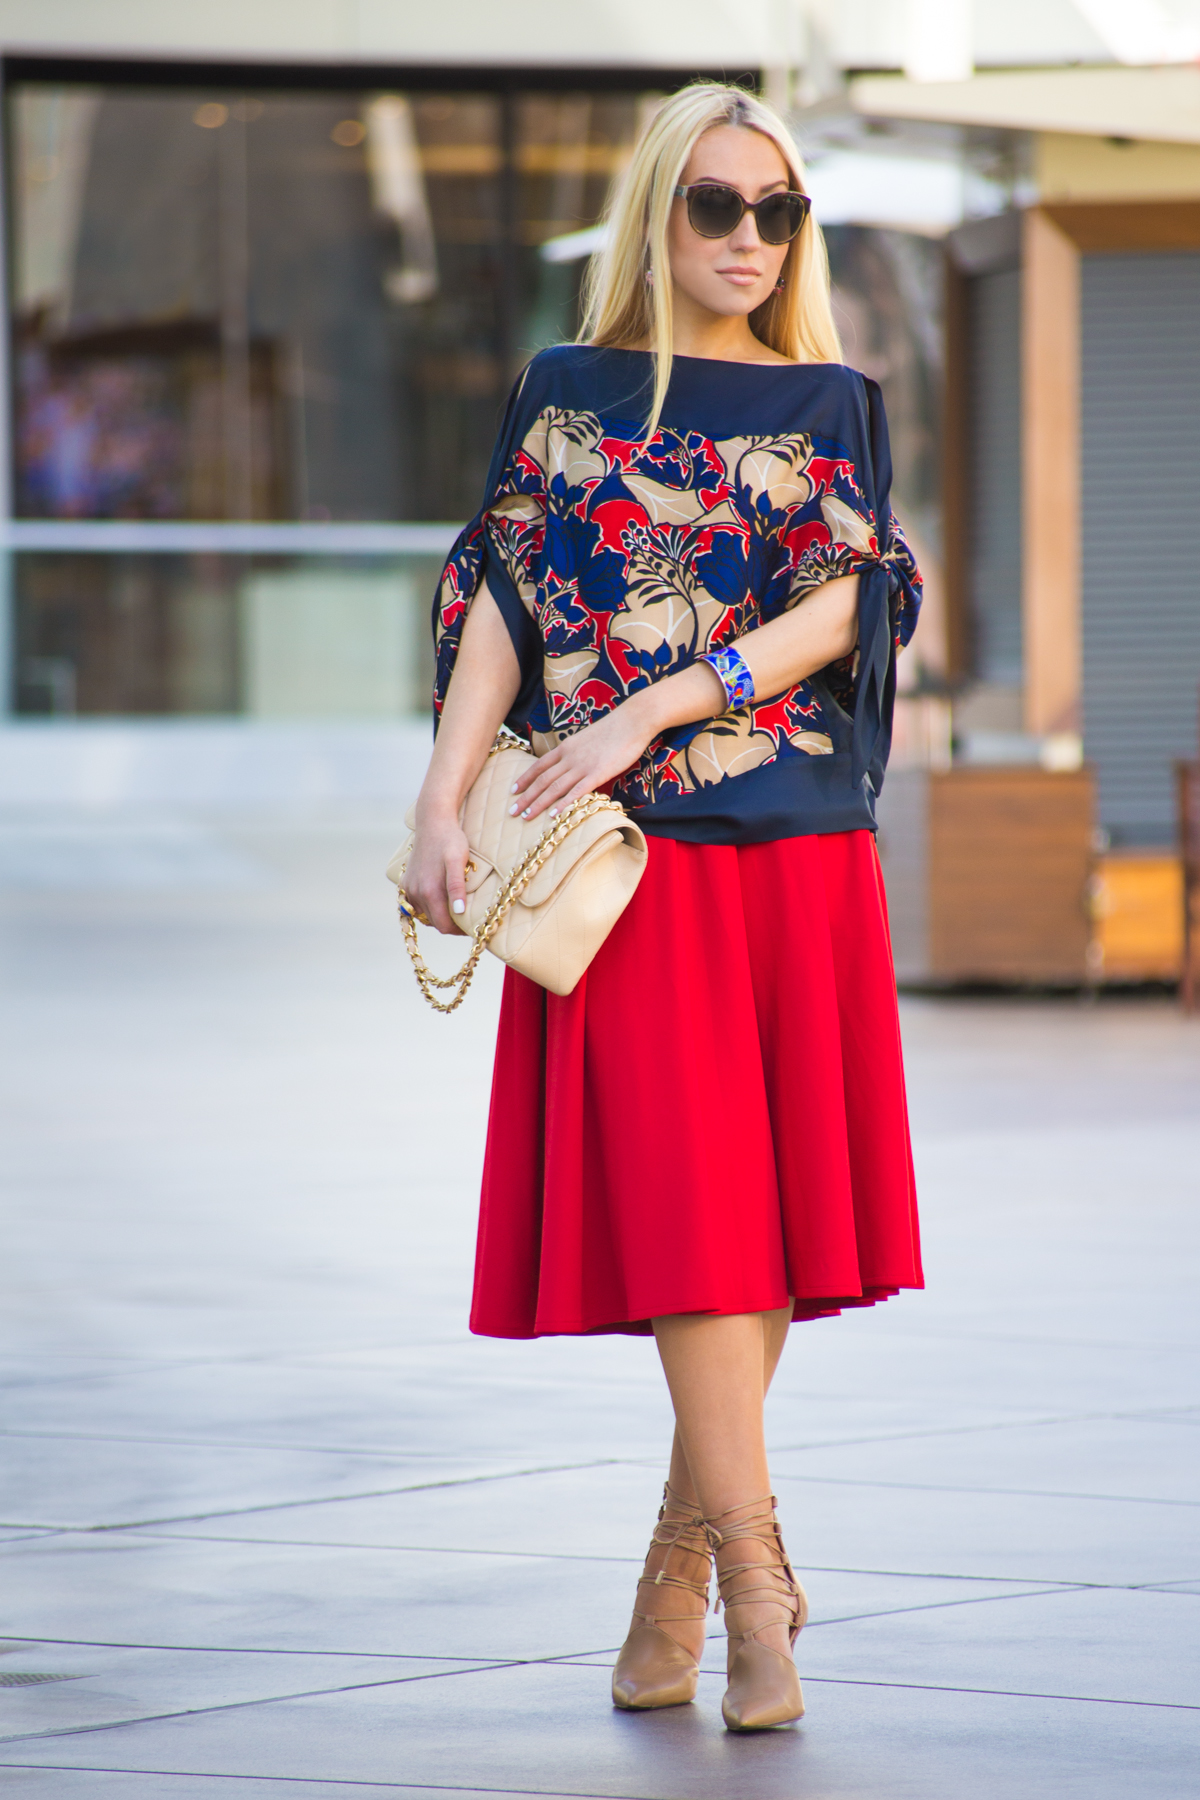 Red and Navy outfit, miu miu sunglasses,chanel bag,hermes bangle